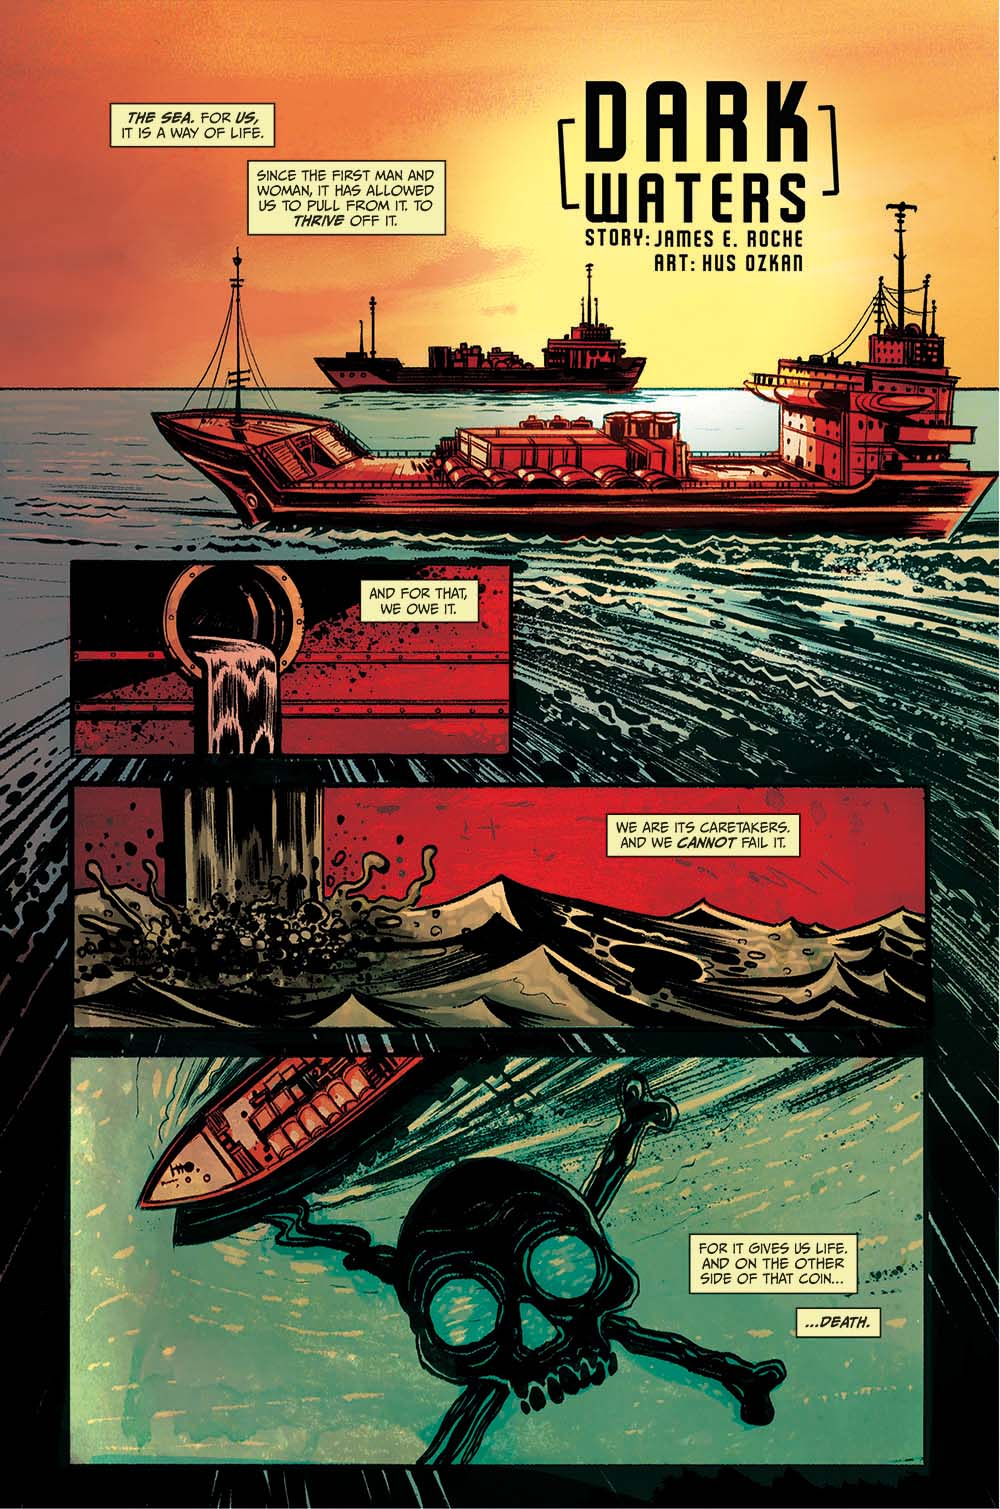 Dark Waters  (Water Pollution) By James E. Roche and Hus Ozkan   When offshore waste dumping annihilates a fishing villages food supply, forcing its villagers into squalor and certain death, the survivors are forced to take matters into their own hands.